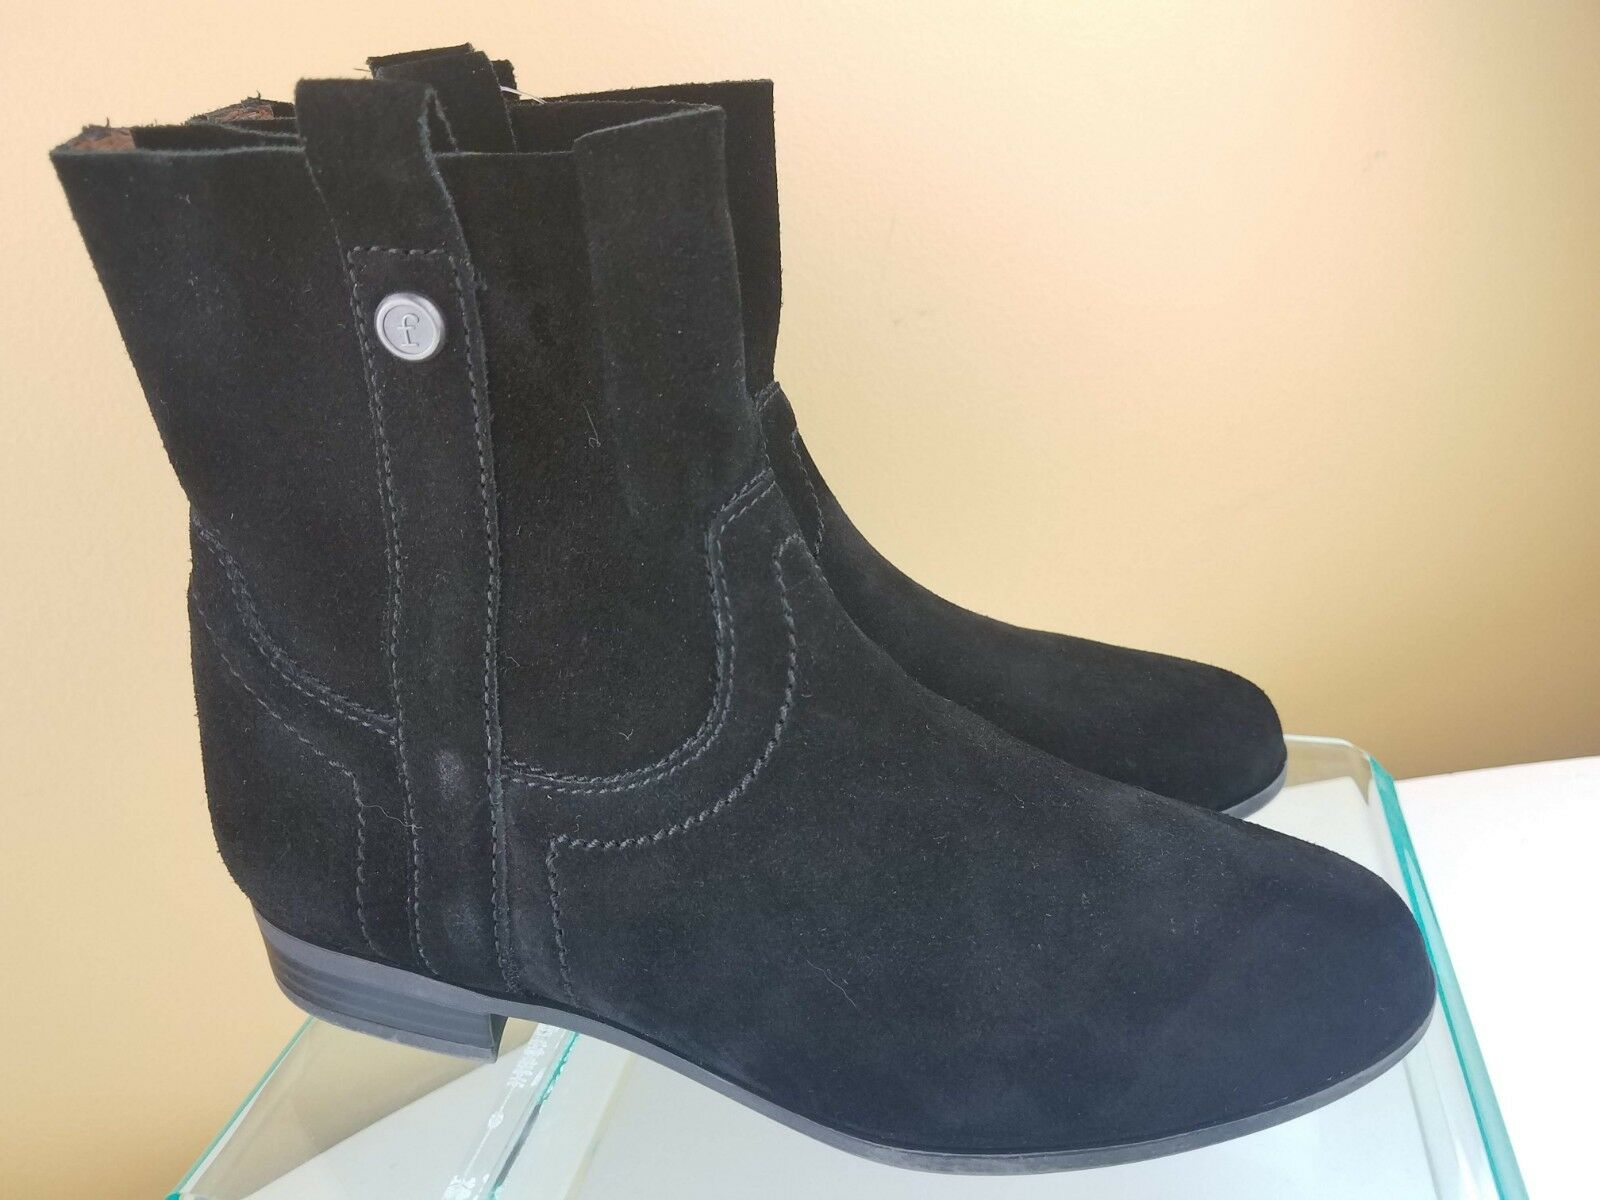 NWT Frye & Co. Women Sarah Suede Slip On Black Ankle Bootie Boots SZ 6